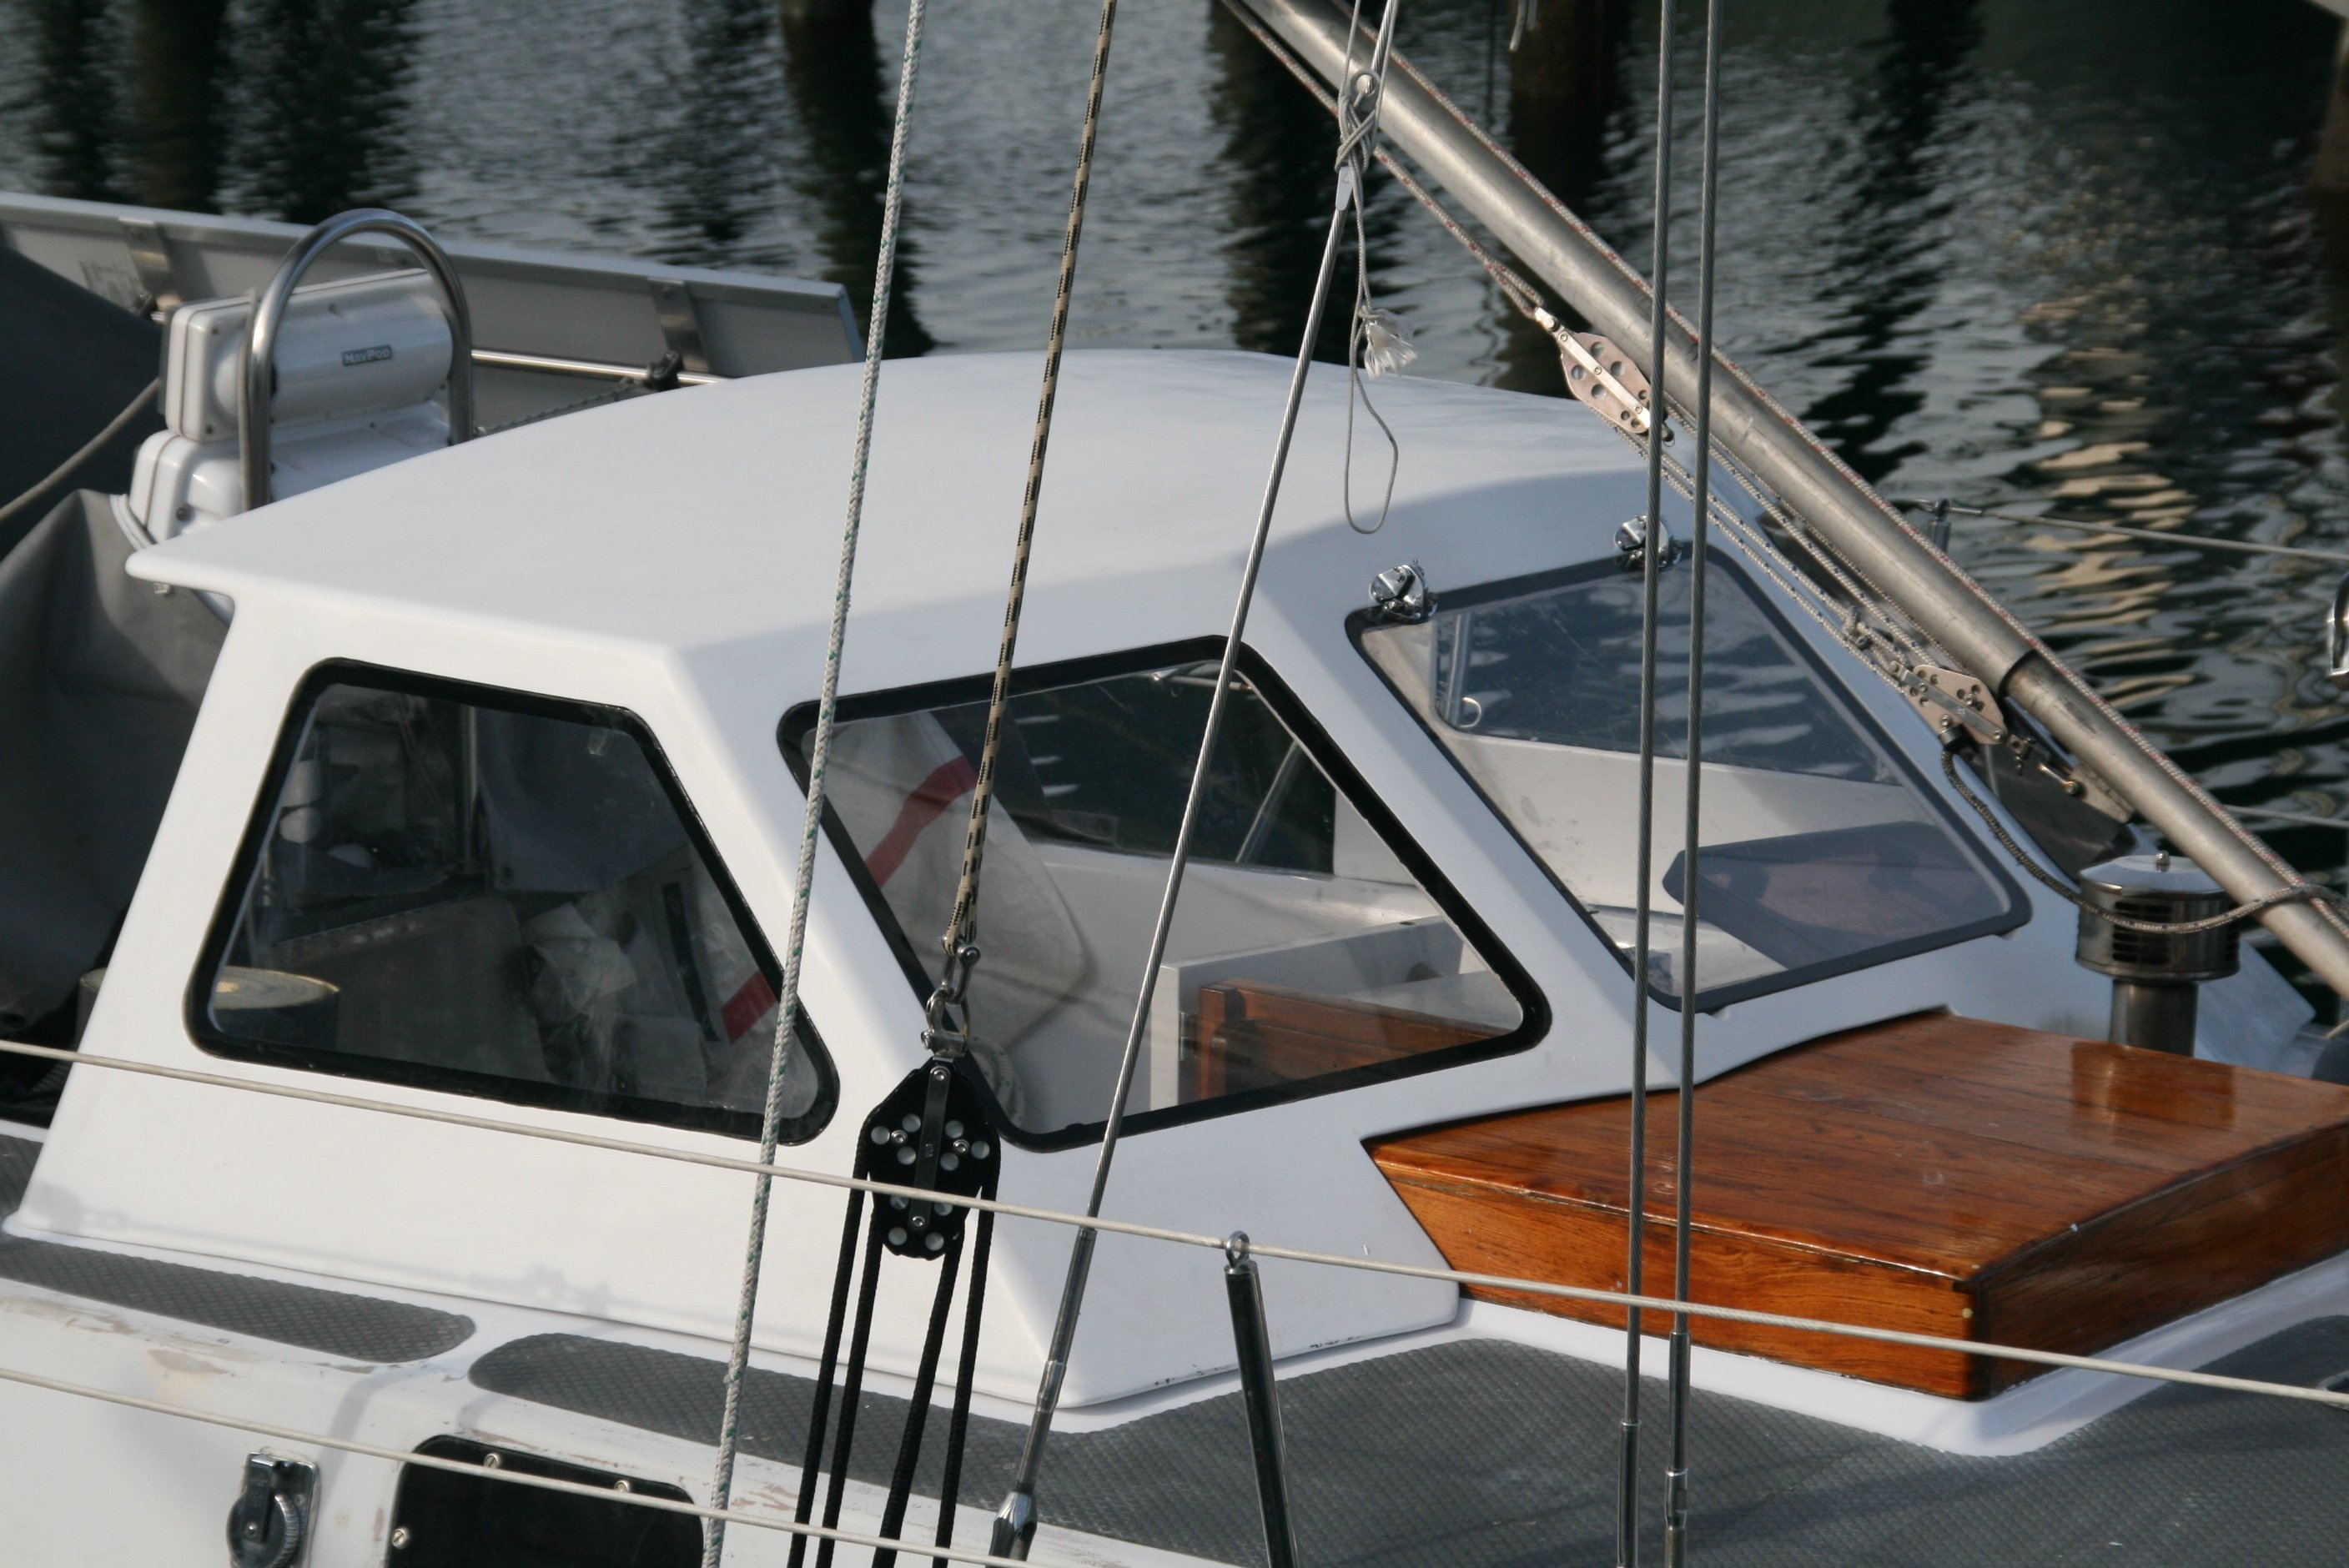 boat electrical wiring with Services on Dc Power Circuit Wiring Color Codes moreover Surface wiring in addition Trailer Light Wiring Diagram together with T20685 How To Electric Fan Install The Basics also Yanmar Aftercooler Maintenance.